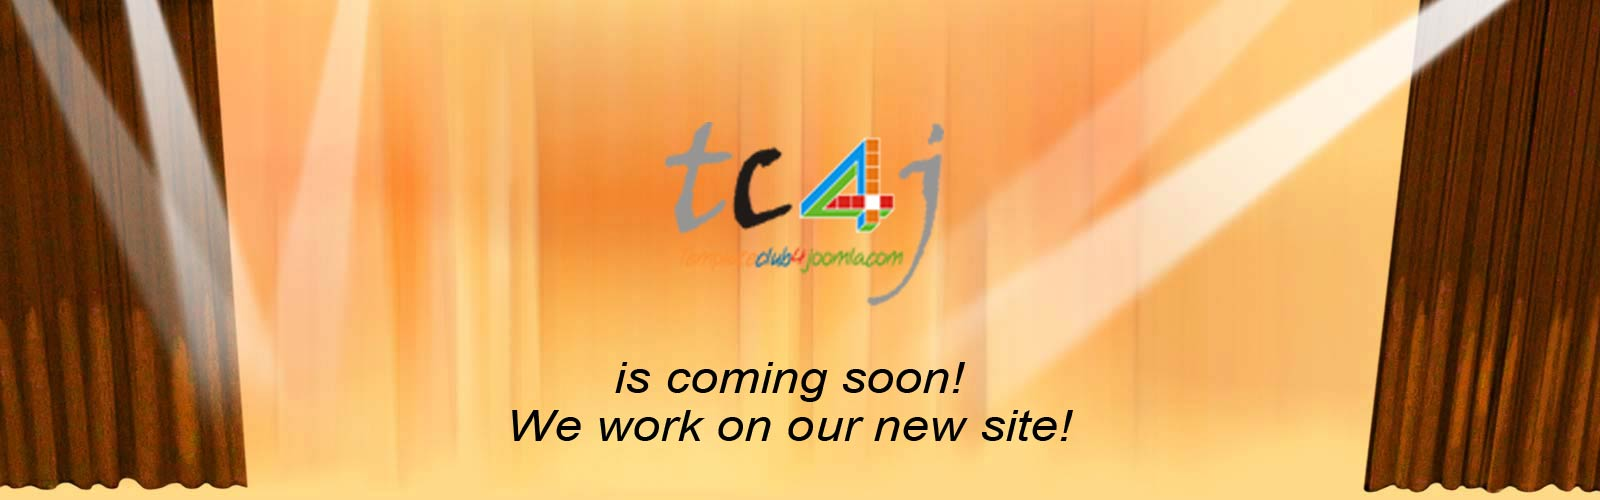 tc4j is coming soon